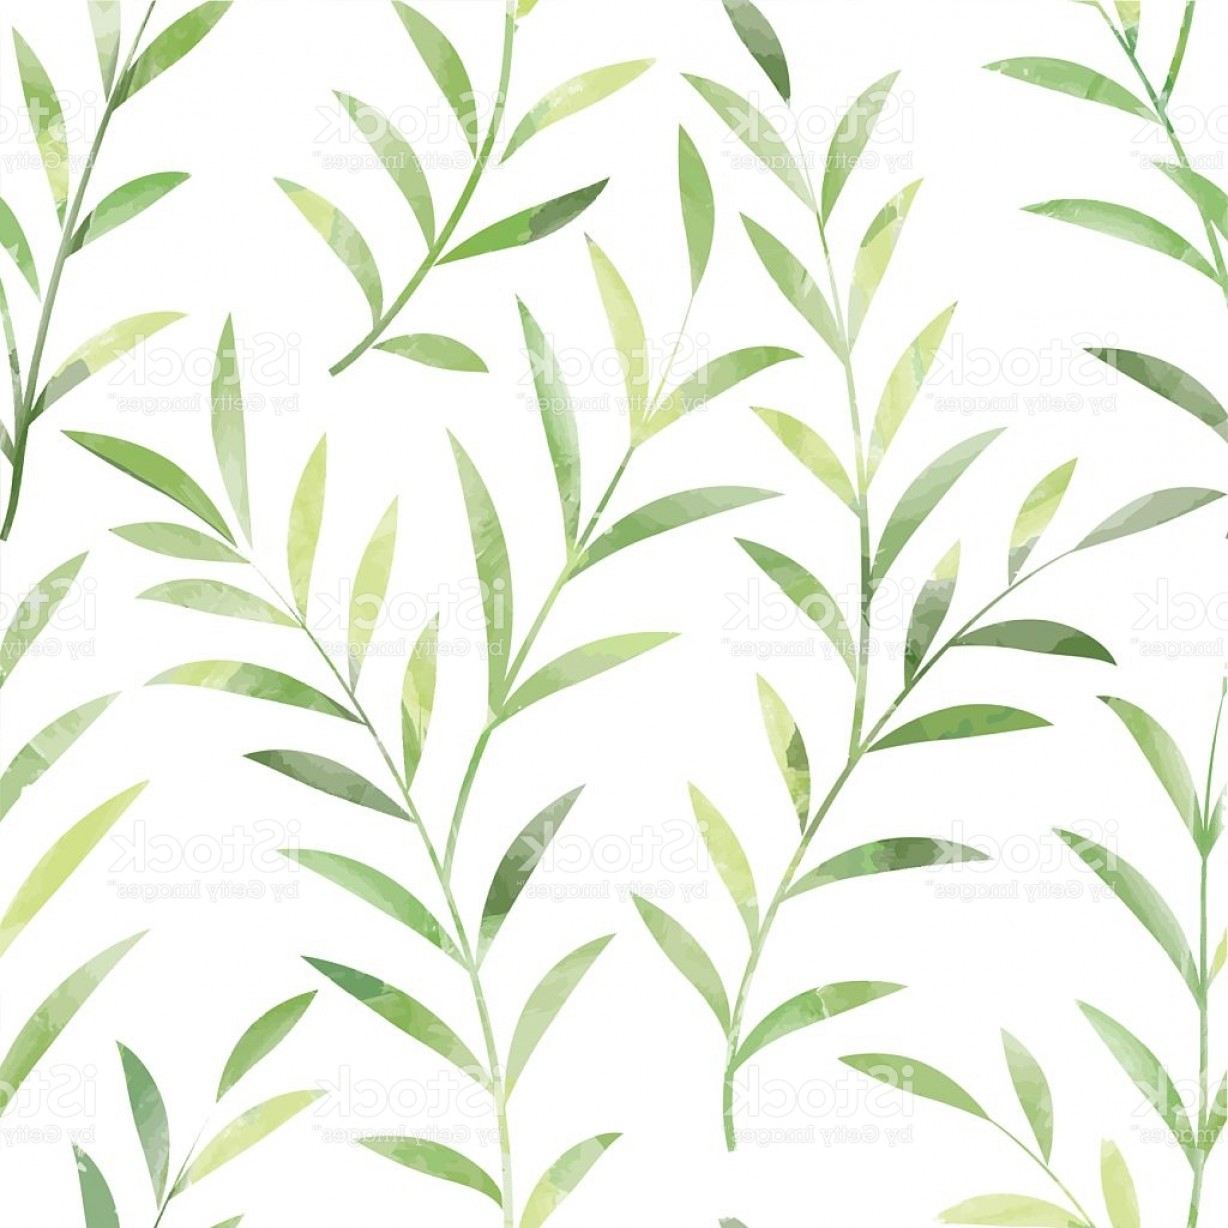 Leaf Background Vector: Floral Seamless Pattern Summer Leaves Background Gm